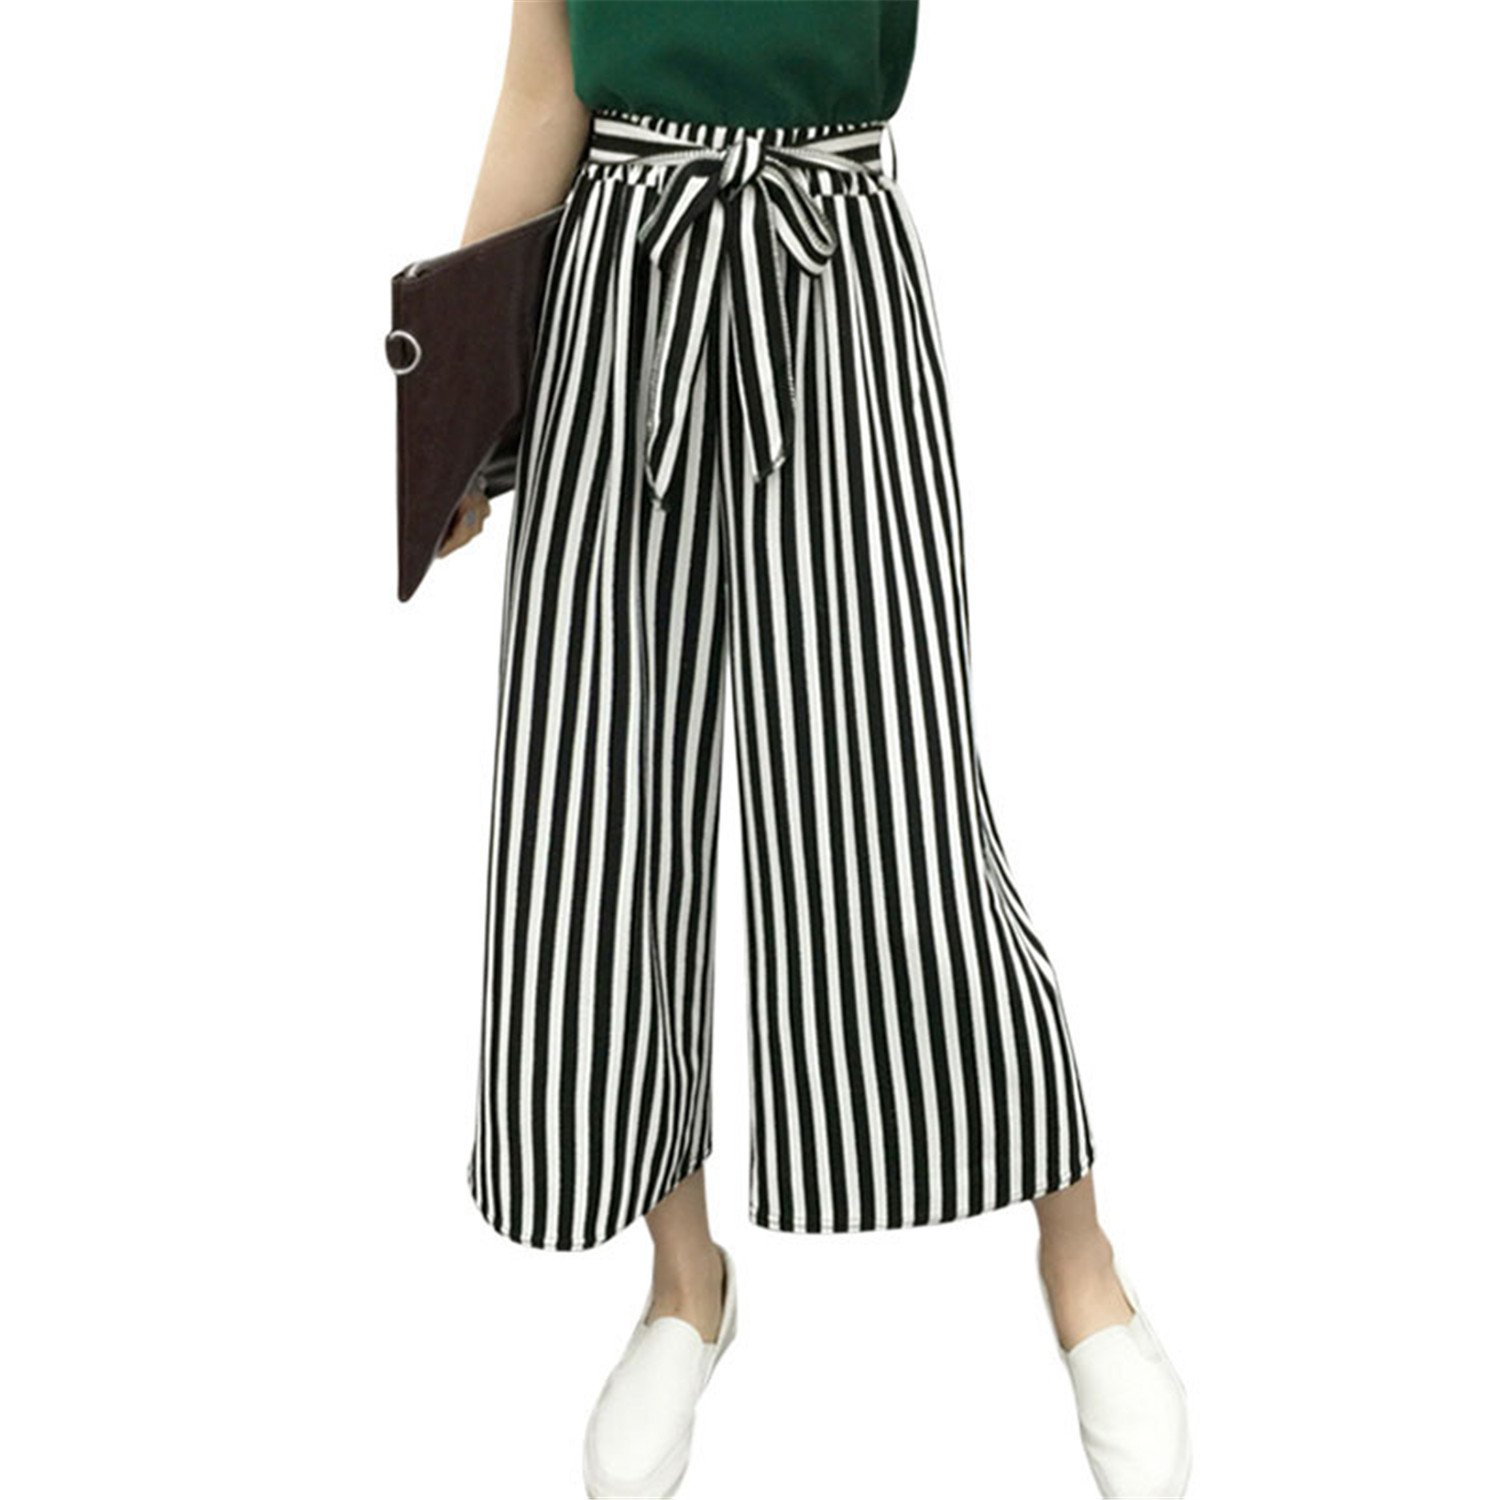 Fashion Summer Hot Selling Ladies Office Trousers Loose Wide Leg Pants Woman High Waist OL Casual Office Pants for Women Fine Black Bars M by Rainlife pants (Image #4)